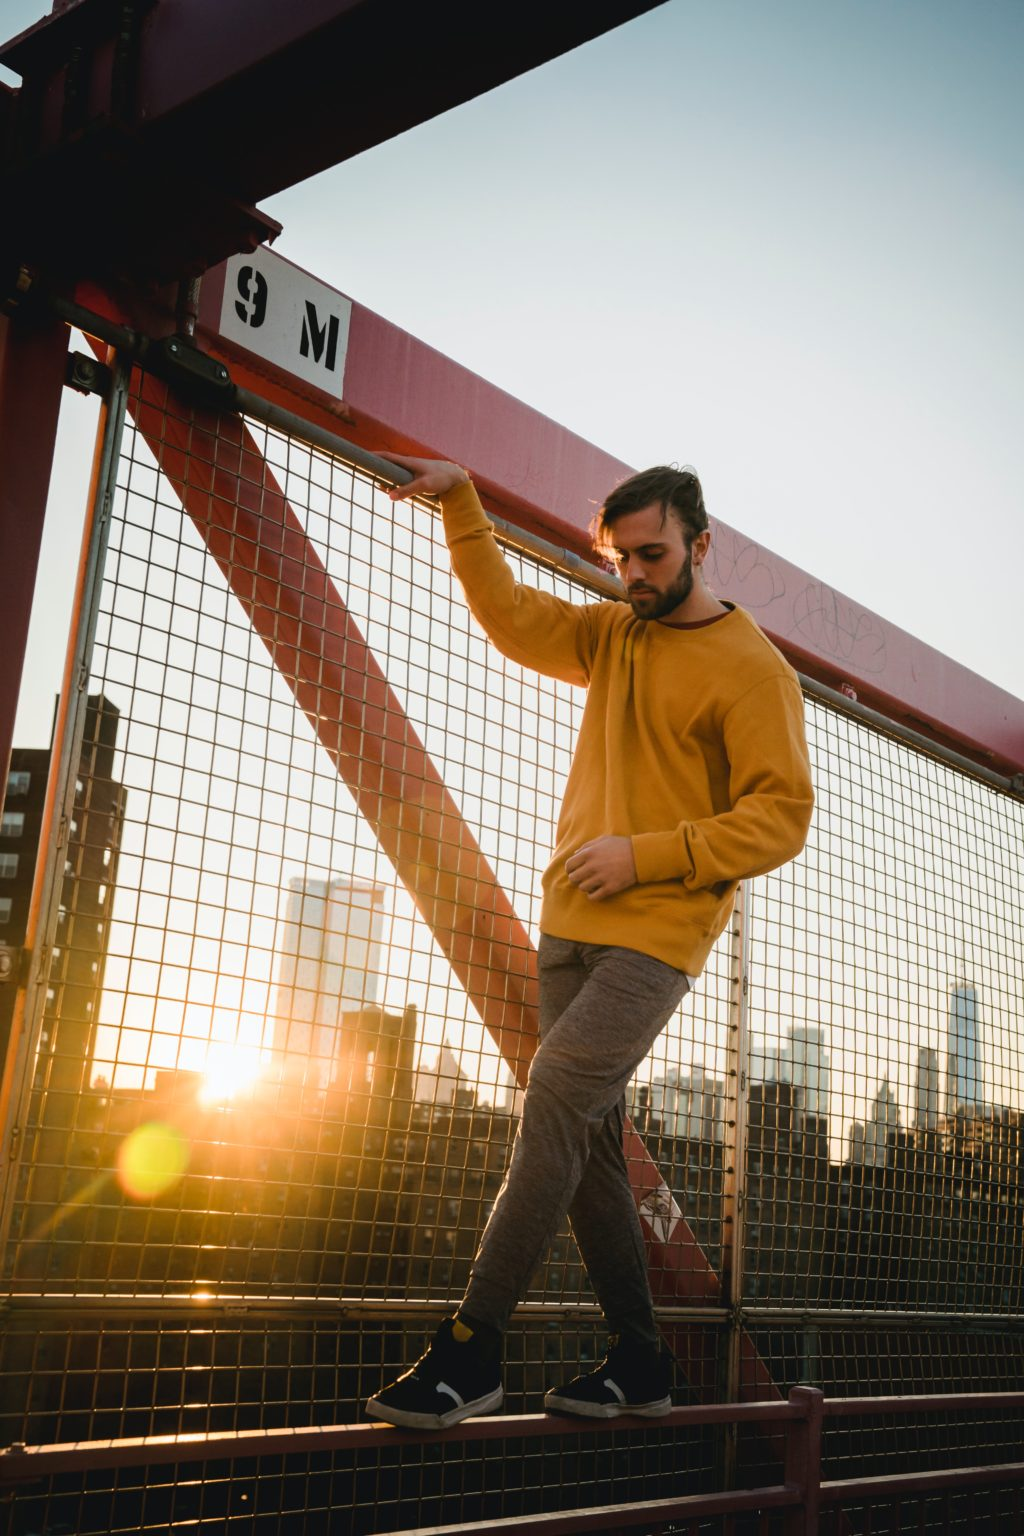 Portrait of man standing by fennce backlit by sun with lens flare.